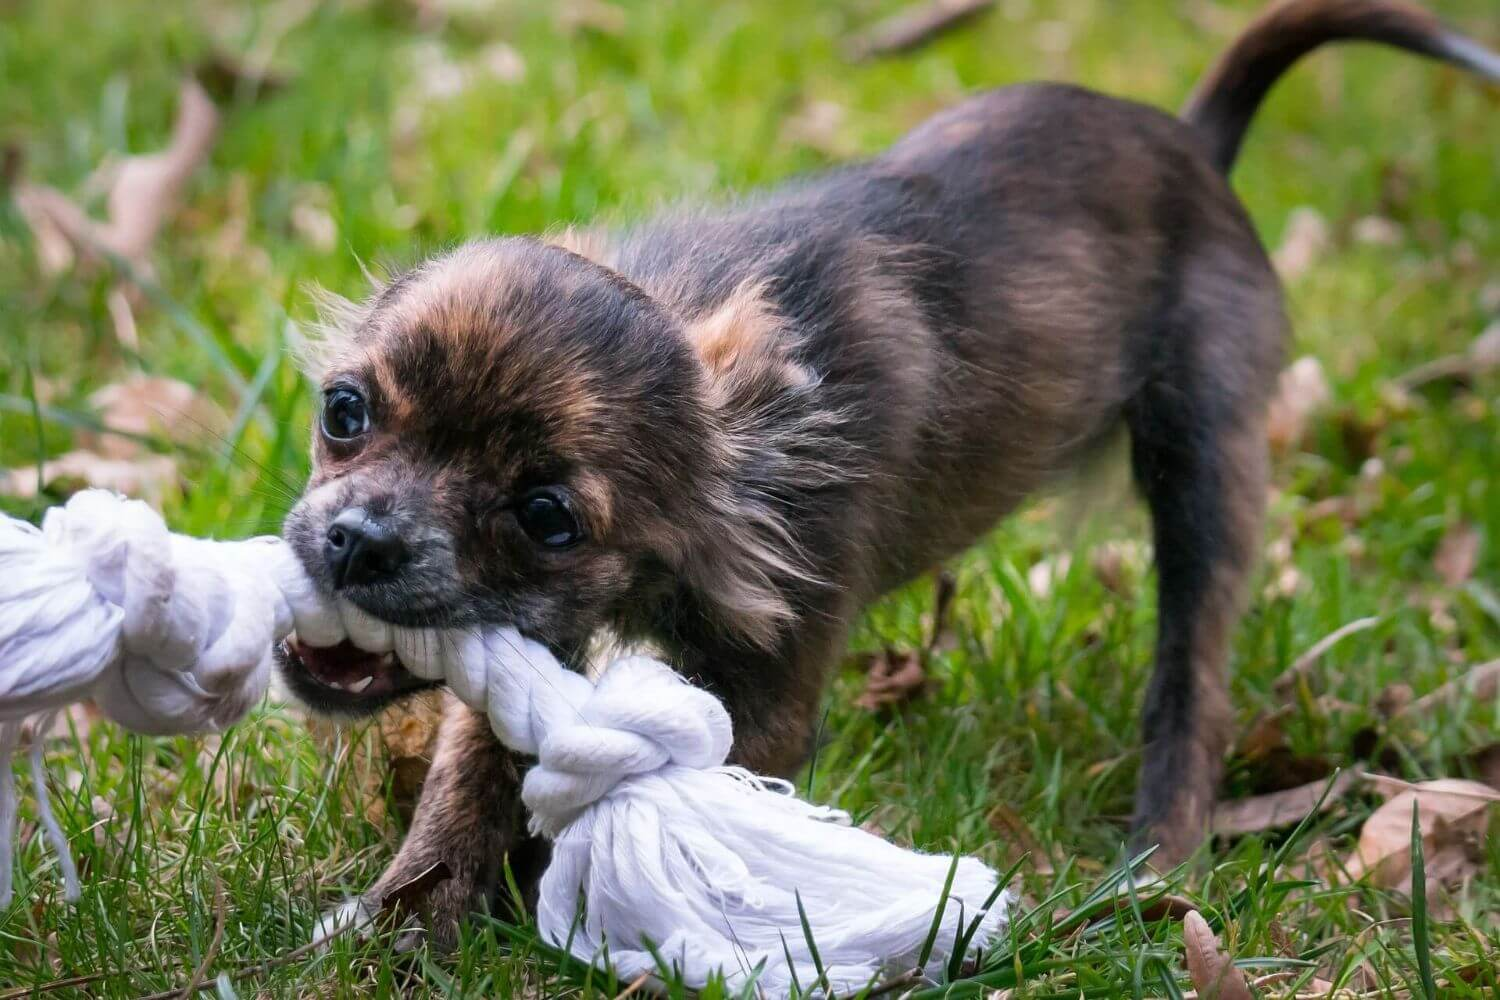 Tips and tricks to prevent a puppy from biting